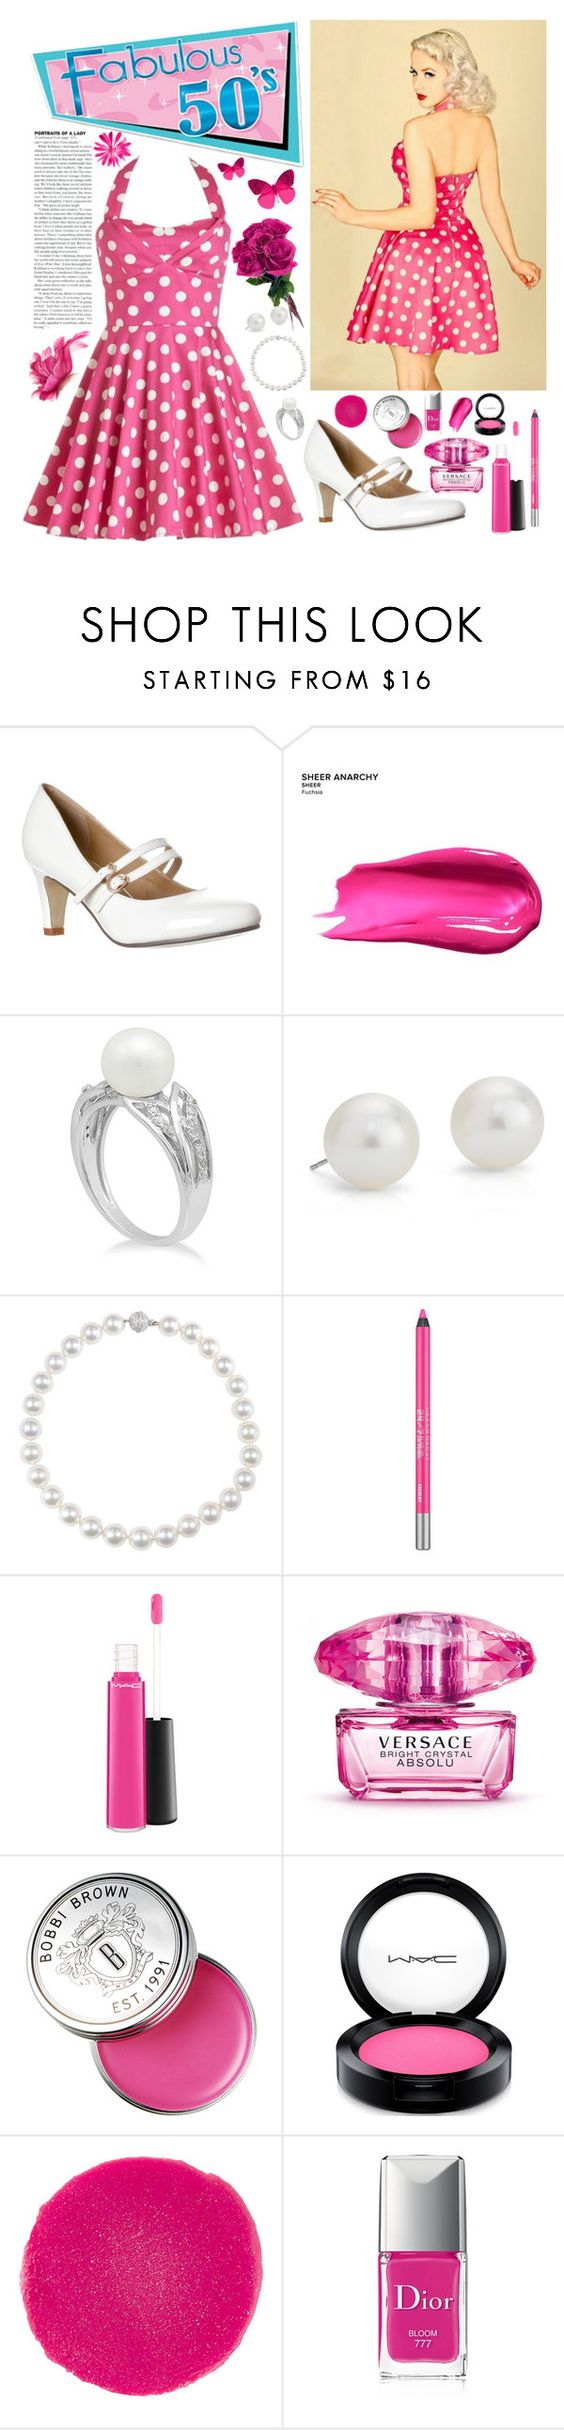 """""""Fabulous 50s"""" by whims-and-craze ❤ liked on Polyvore featuring Urban Decay, Blue Nile, MAC Cosmetics, Versace, Bobbi Brown Cosmetics, Christian Louboutin and Christian Dior"""